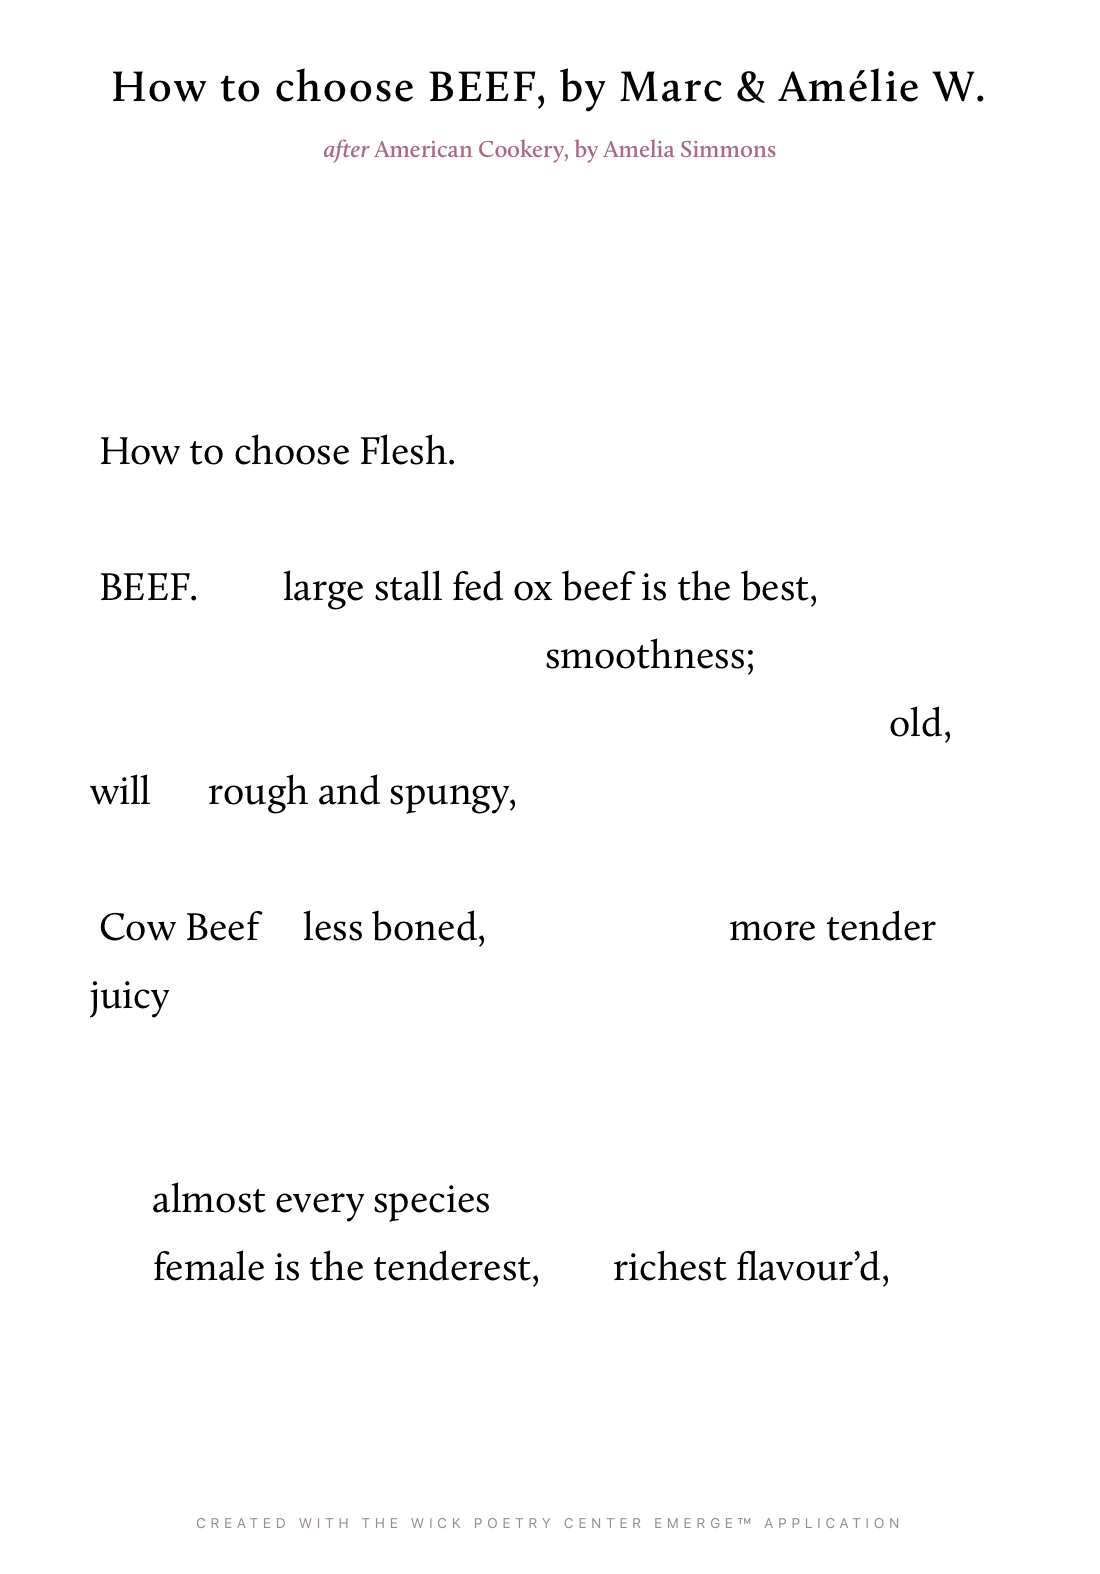 How to choose BEEF